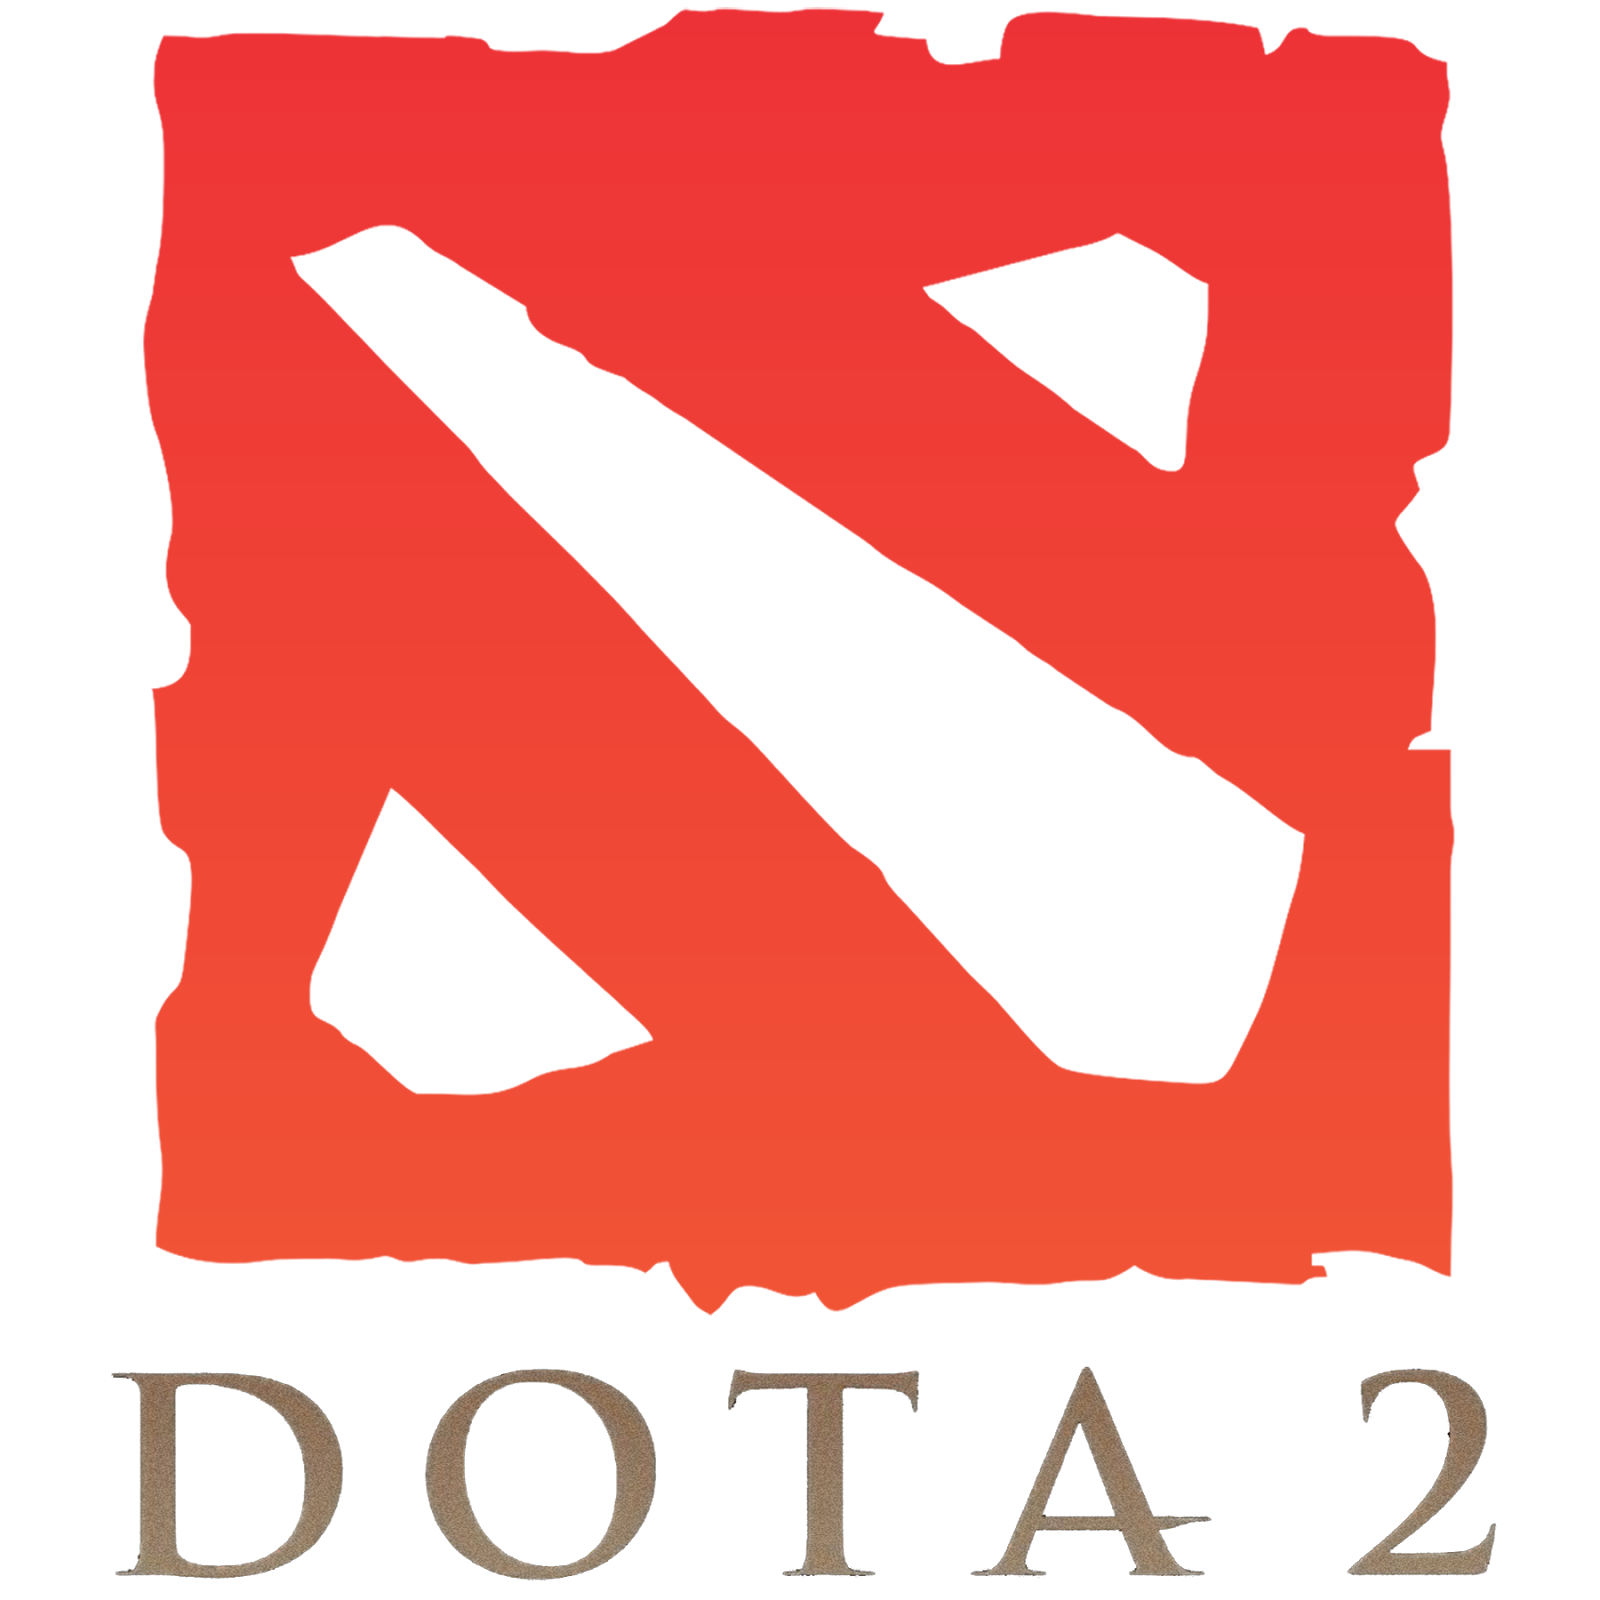 Feact : Download DOTA 2 dan Cara Instal DOTA 2